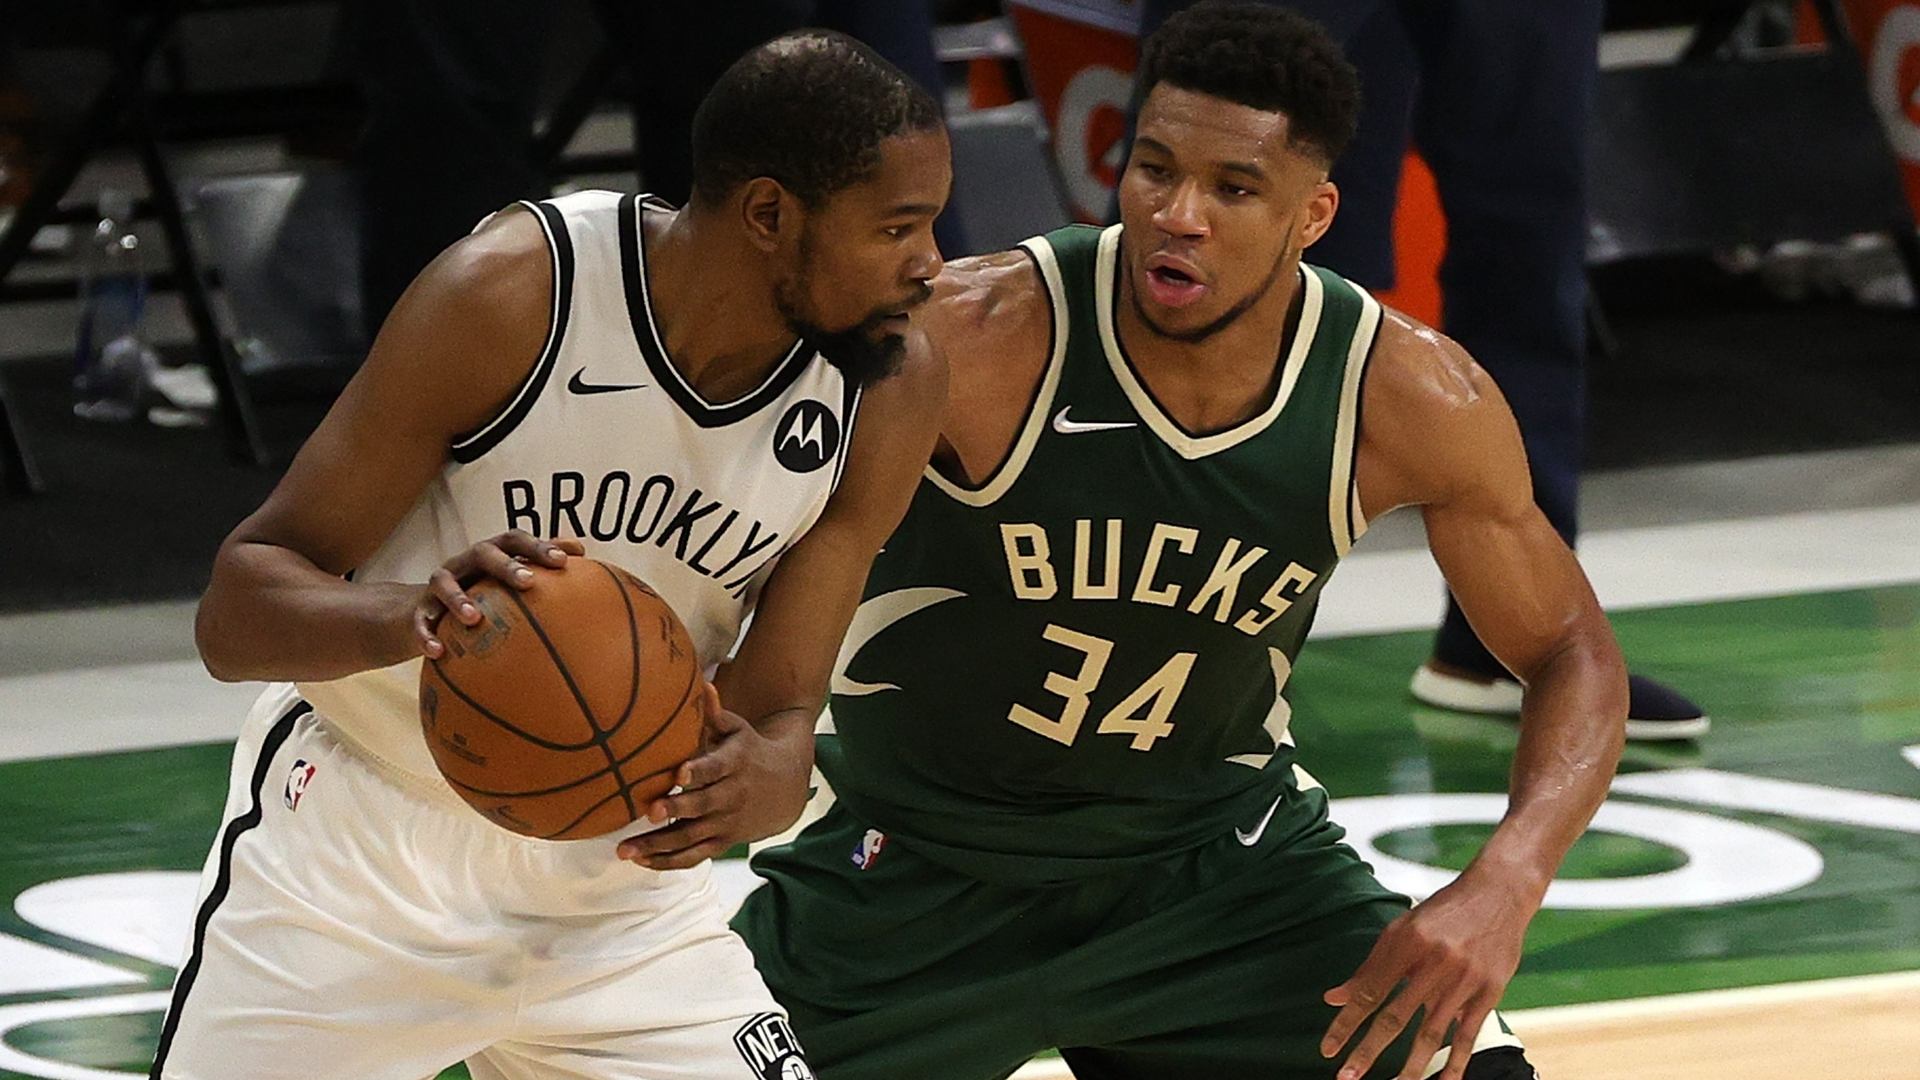 Milwaukee Bucks vs Brooklyn Nets: What did you learn from the confrontation between Janice Adetokumpo and Kevin Durant? | NBA.com Australia - Sydney News Today